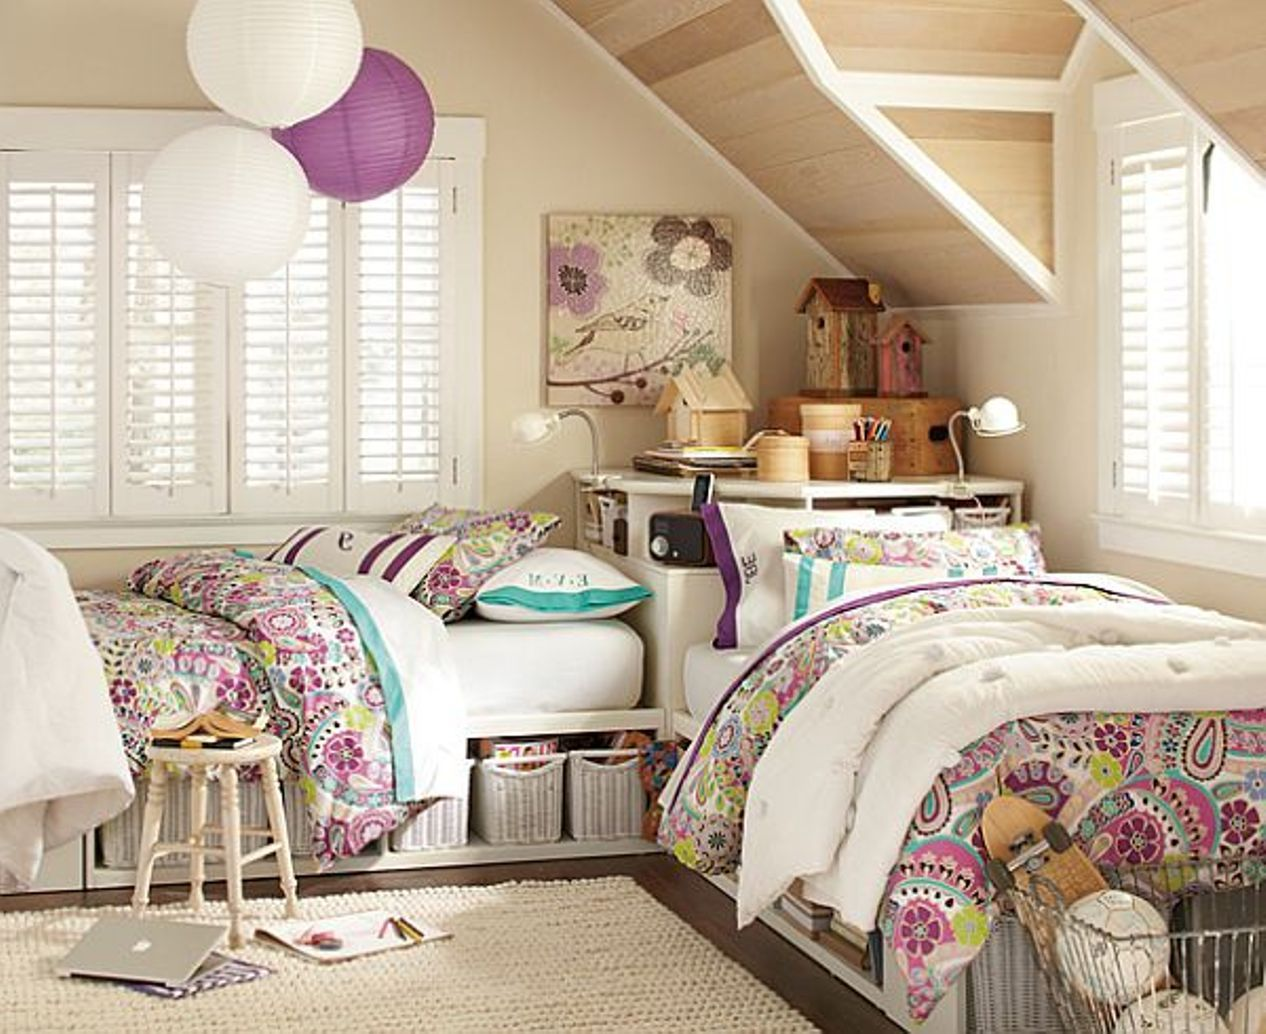 Bedroom   Perfect Bedroom For Twin Girls   Attic Bedroom For Twin Girls  With Bunk Beds. Bedroom   Perfect Bedroom For Twin Girls   Attic Bedroom For Twin